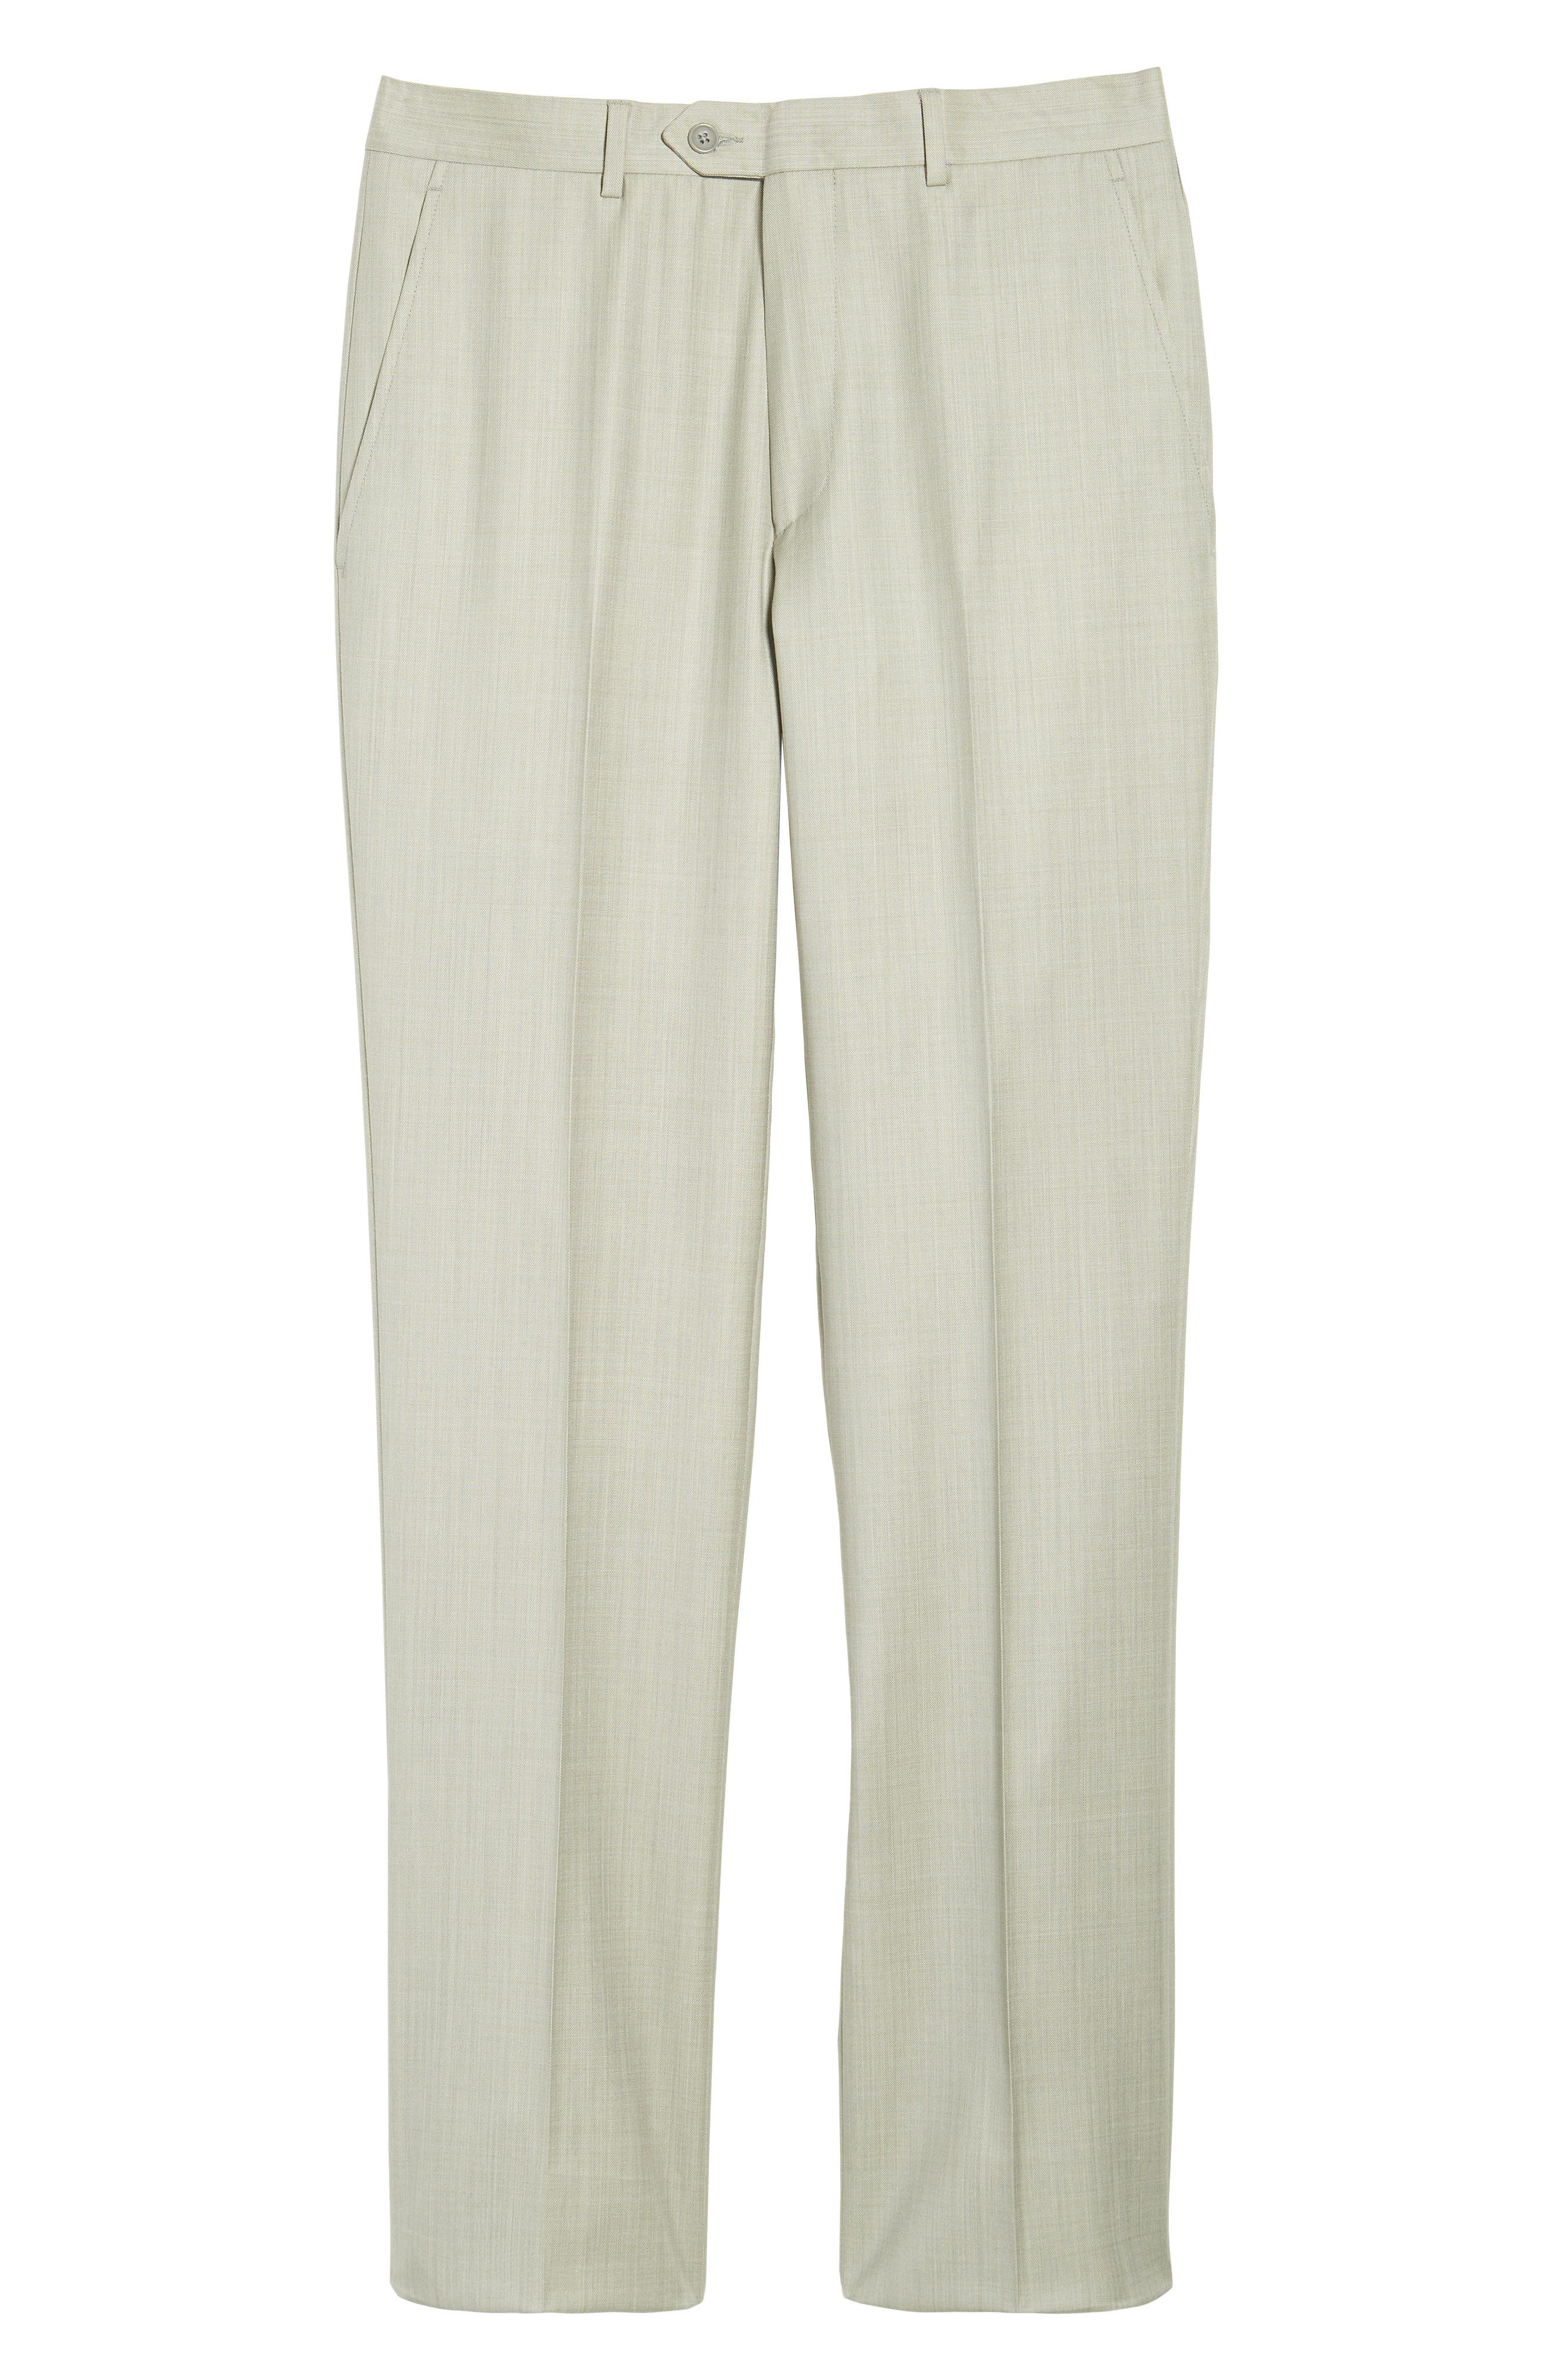 Flat Front Solid Wool Trousers,                             Alternate thumbnail 6, color,